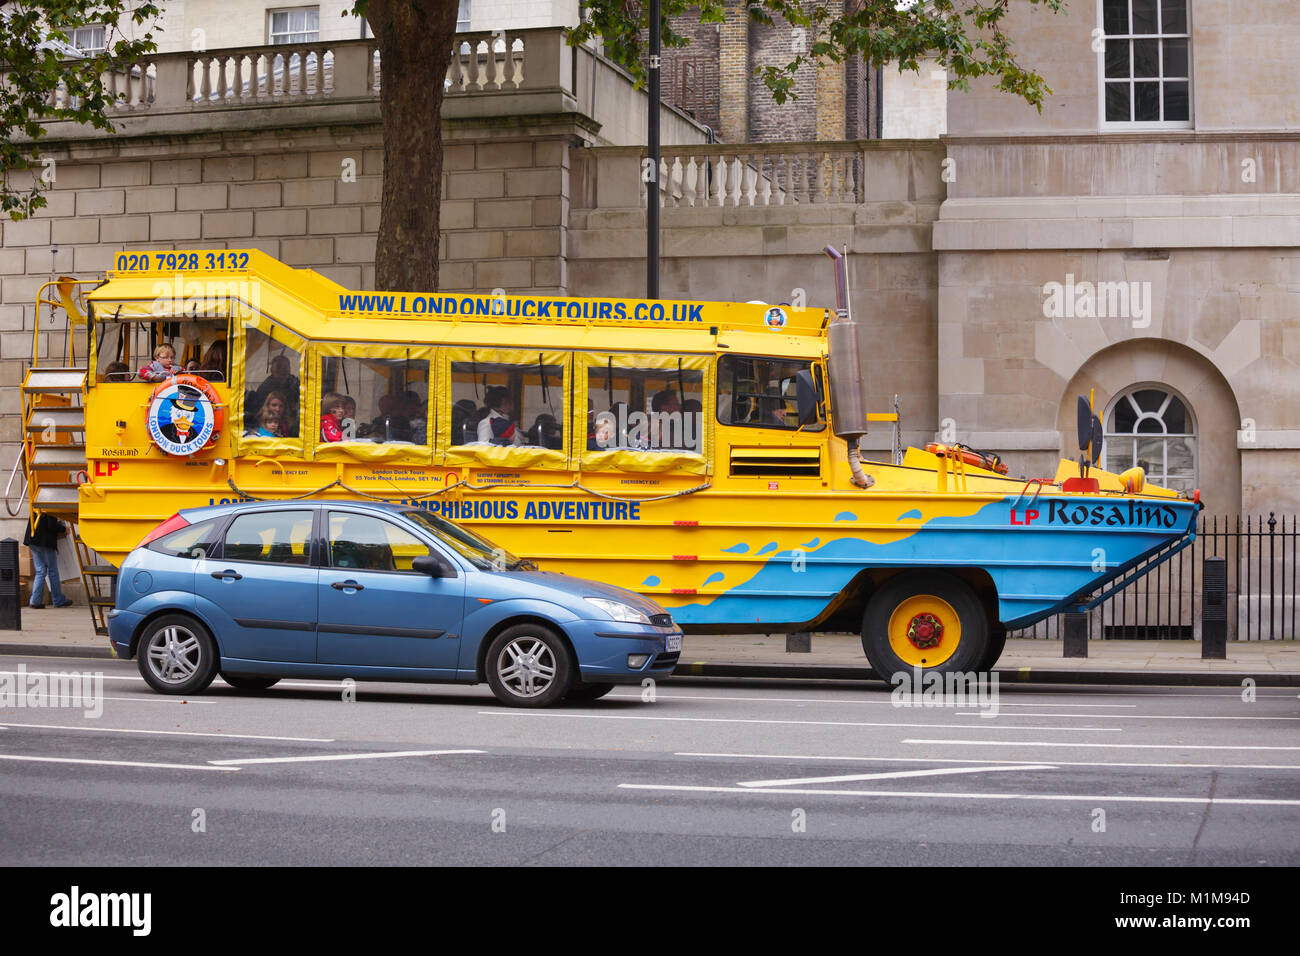 LONDON, UK - OCTOBER 28, 2012: London Duck Tours amphibious vehicle in the ground part of the London sightseeing - Stock Image